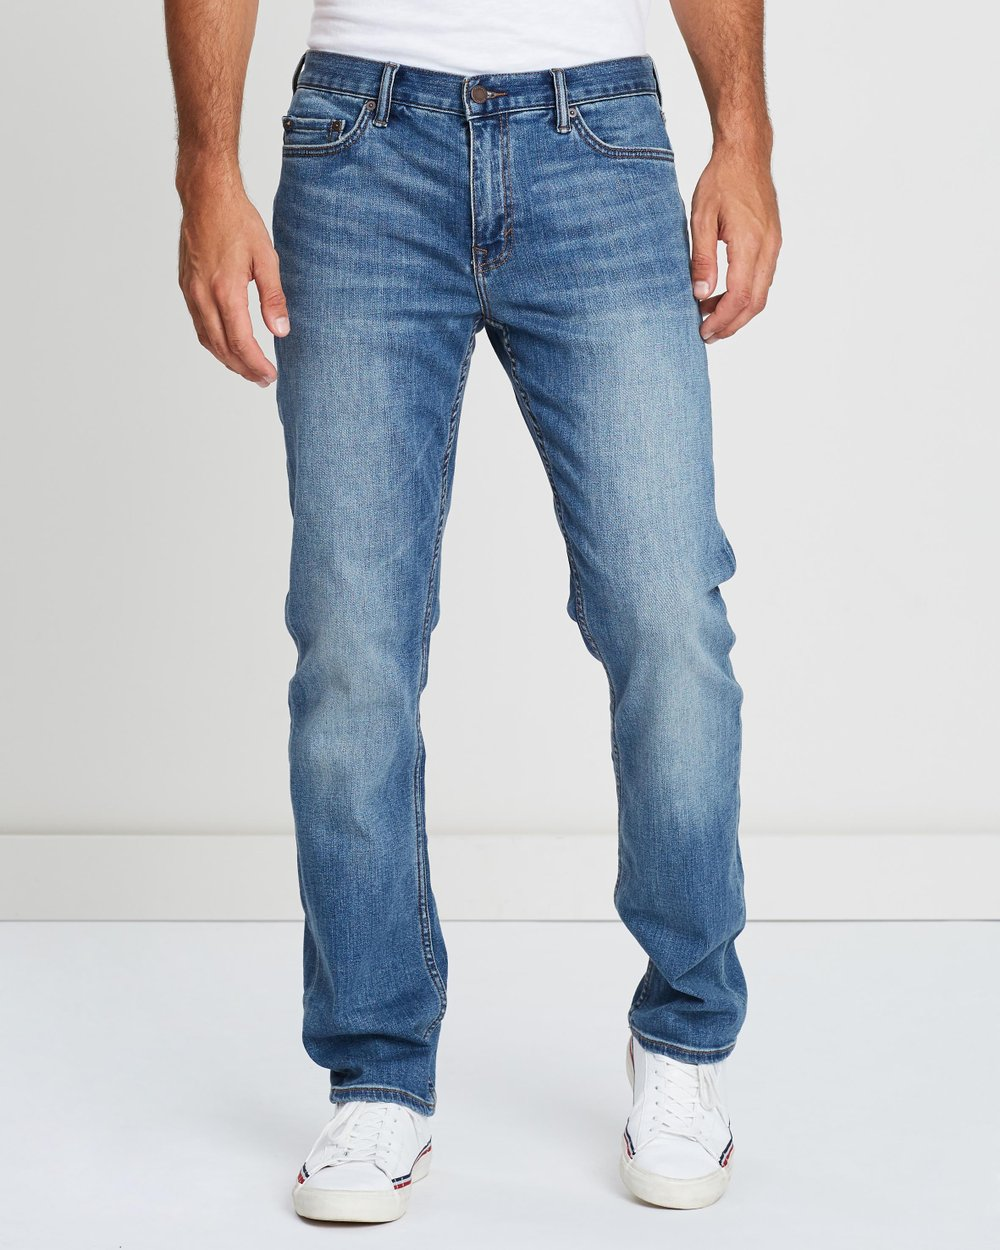 428842ad090 Slim Tusker Wash Jeans by Banana Republic Online